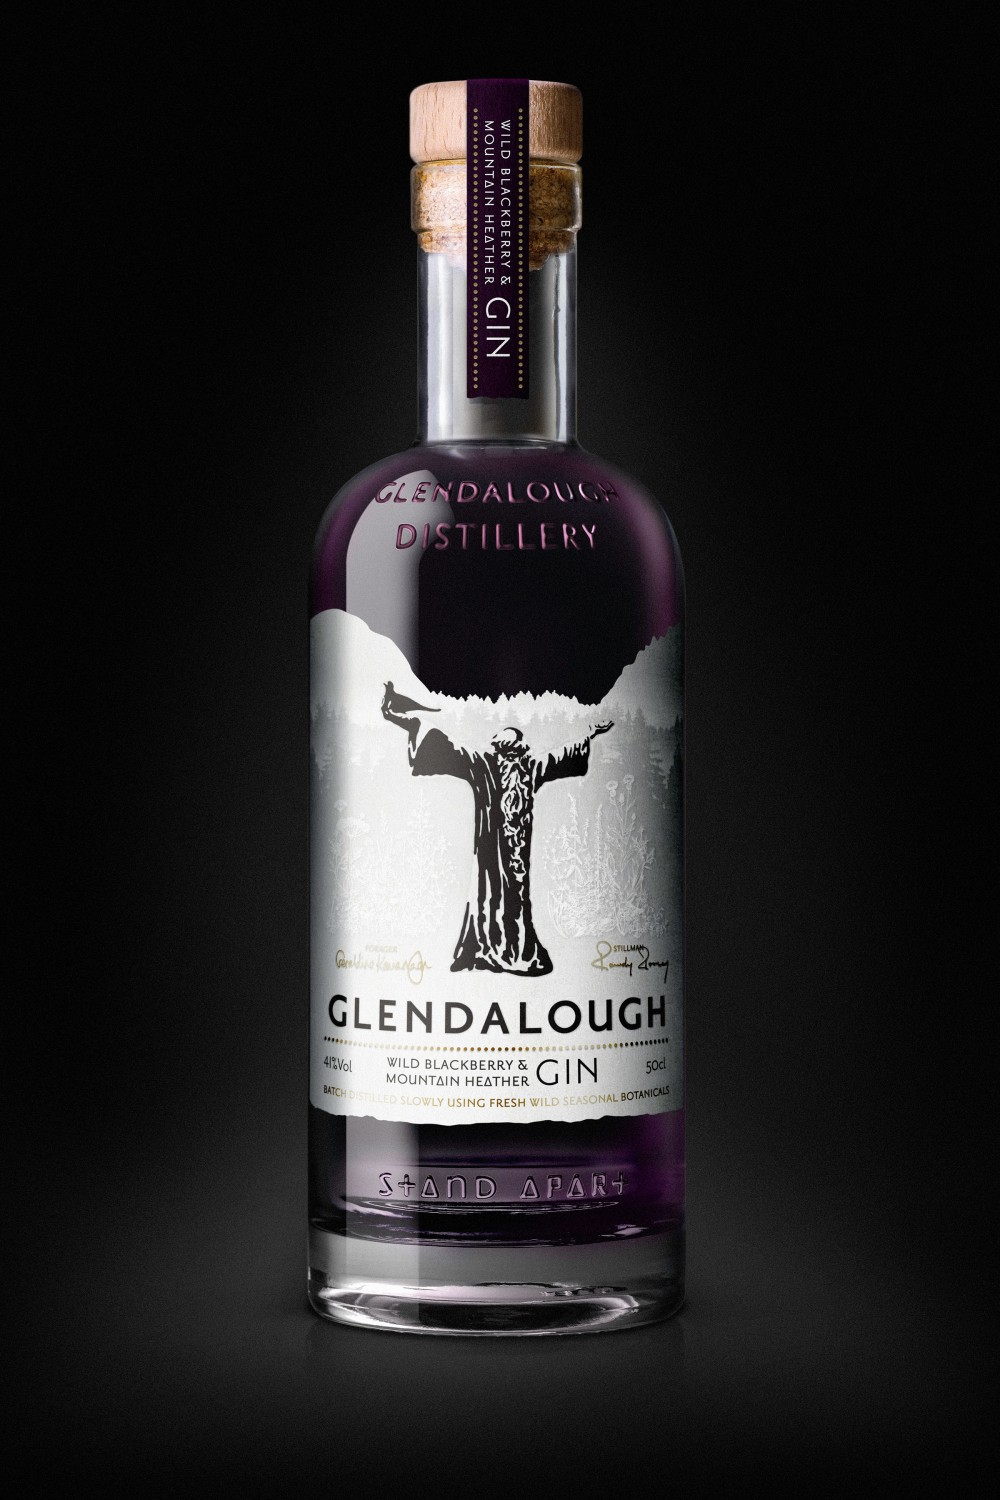 Wild Blackberry & Mountain Heather Gin